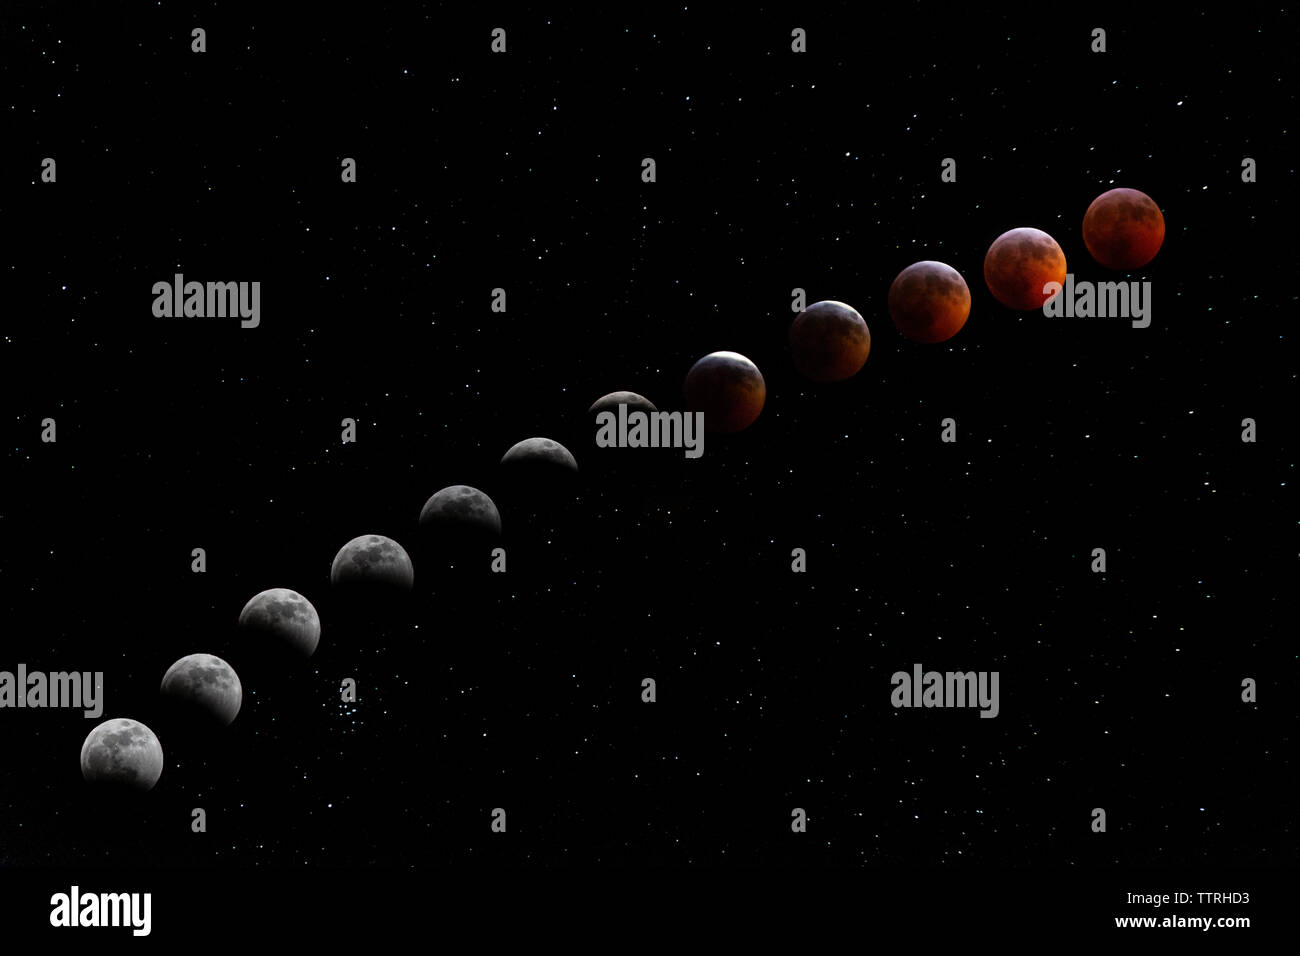 Lunar Eclipse, Super Blood Wolf Moon on January 20th 2019. - Stock Image